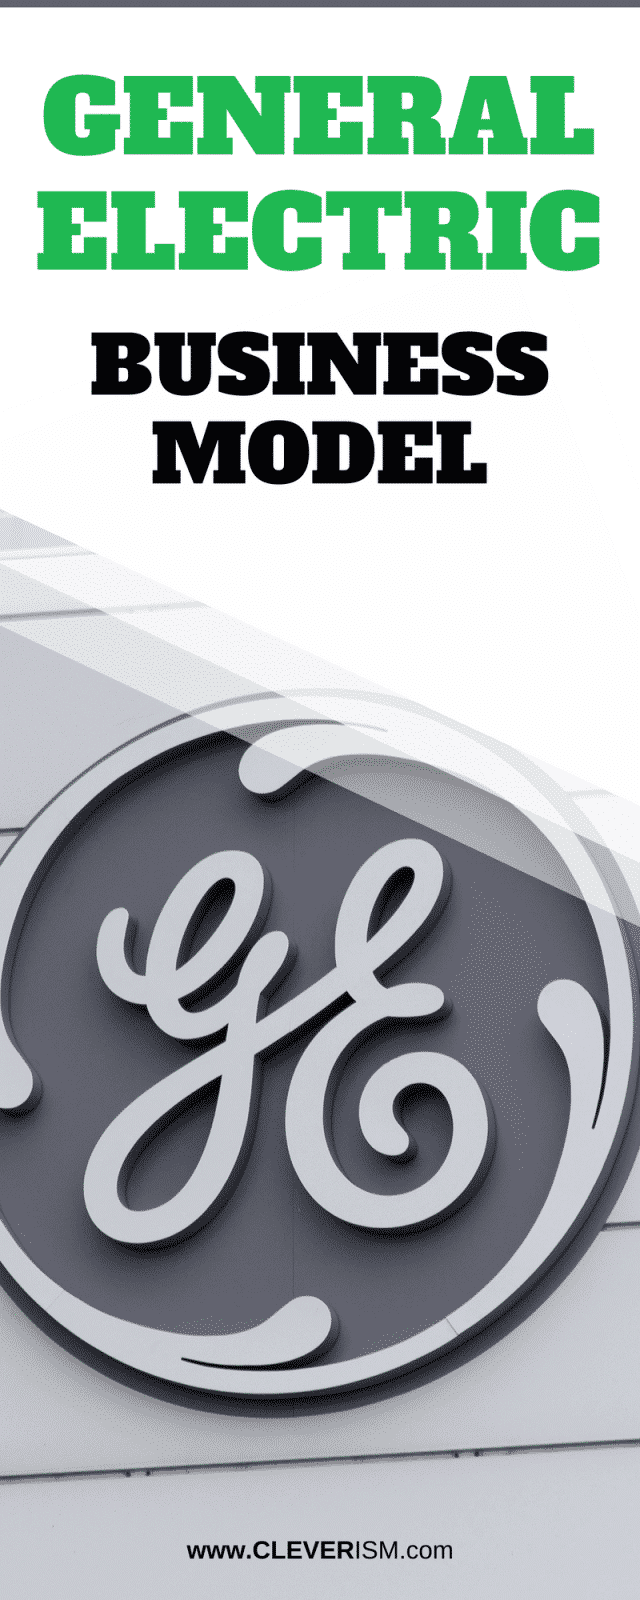 general electric company presentation Upcoming events & presentations  ge company update june 26, 2018 8:30  am - 9:30  2018 electrical products group (epg) conference may 23, 2018.